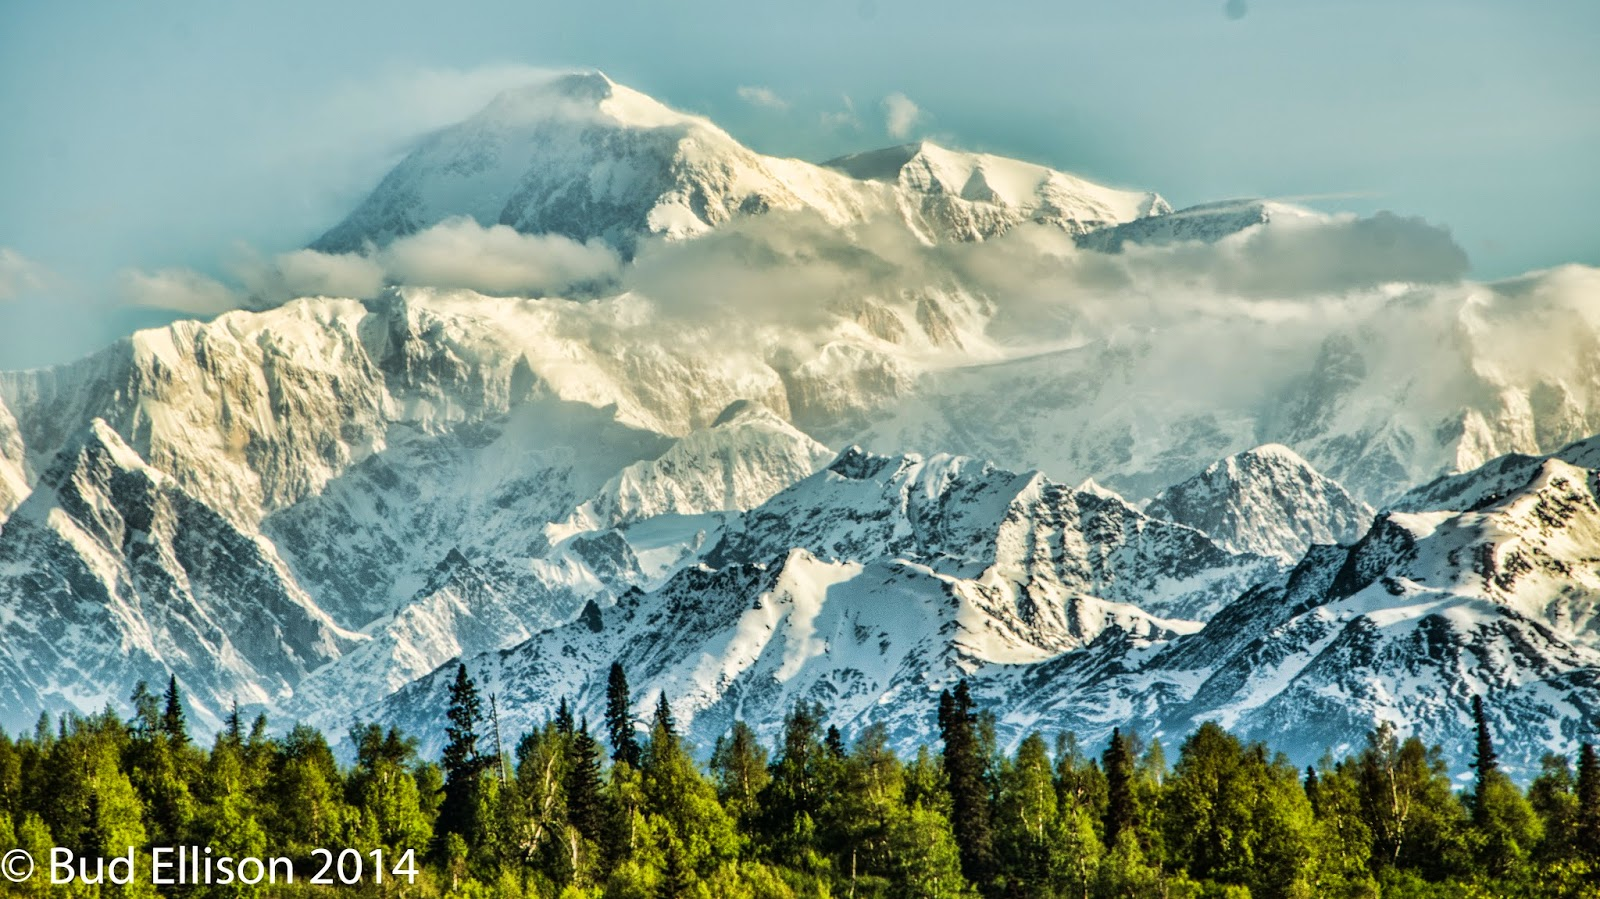 Mt. McKinley on 6/3/2014 at 6:35 AM